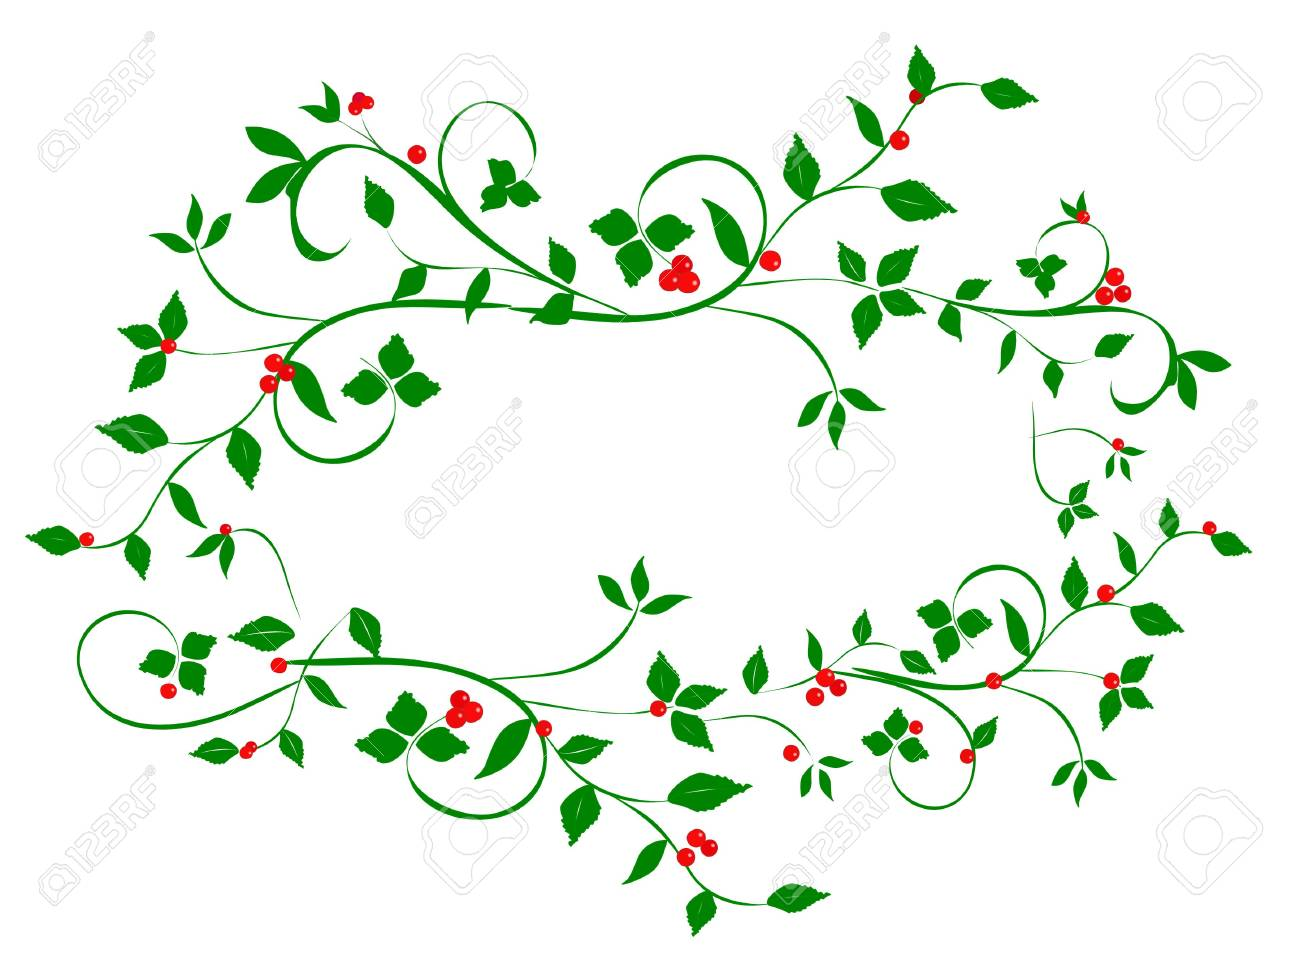 Christmas Vines.Vintage Christmas Holly Vines In Abstract Heart Shape Frame On